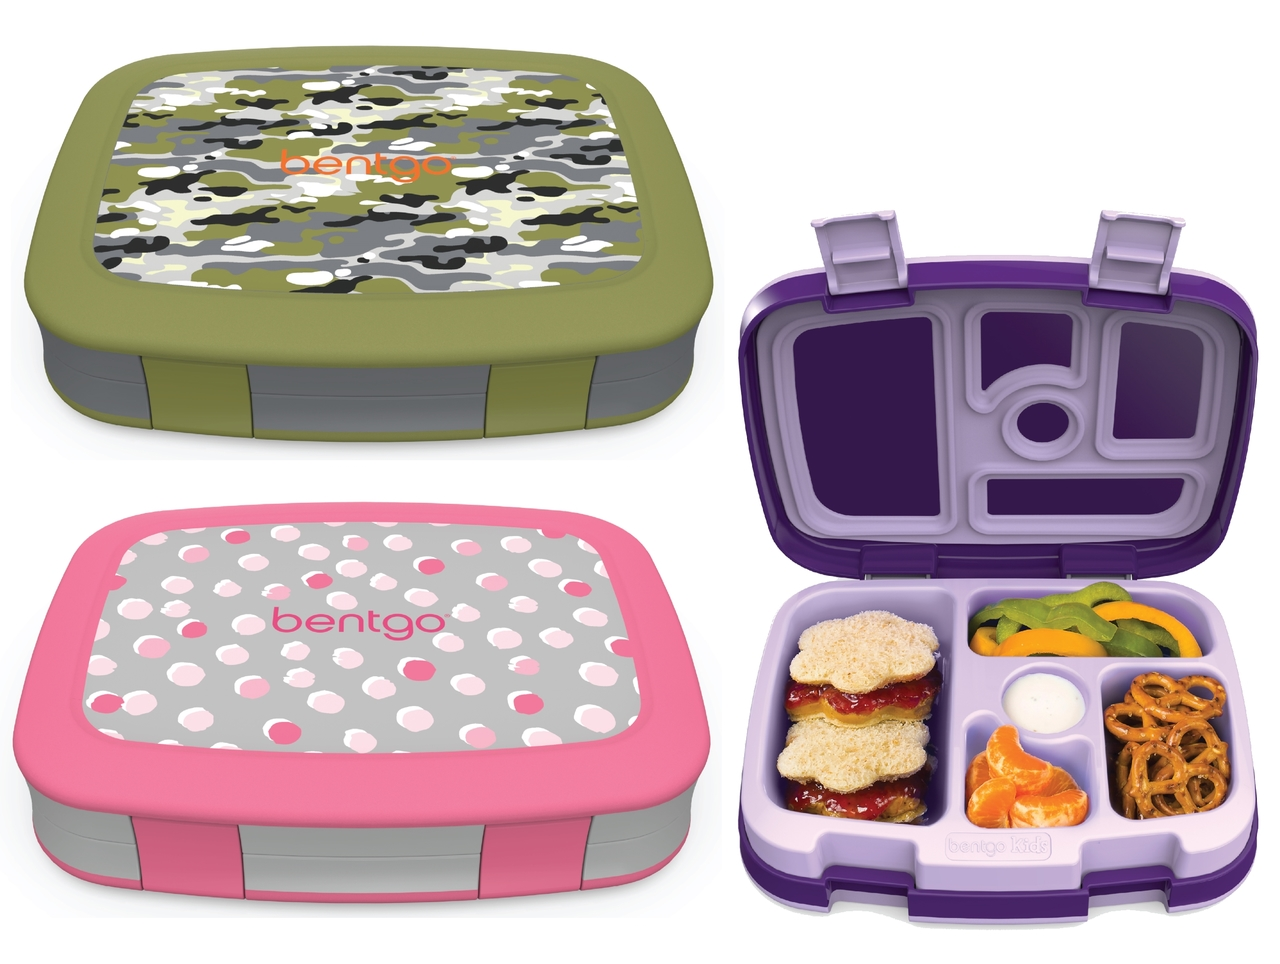 BentGo   Give your child's lunchbox a fun and stylish makeover with bold, new patterns from Bentgo Kids. This one-of-a-kind, leak-proof lunch container features a compartment for fruit, veggies, dip, an entrée, and dessert. We carry BentGo Kids patterned lunch boxes and replacement trays if your existing BentGo needs a refresher!